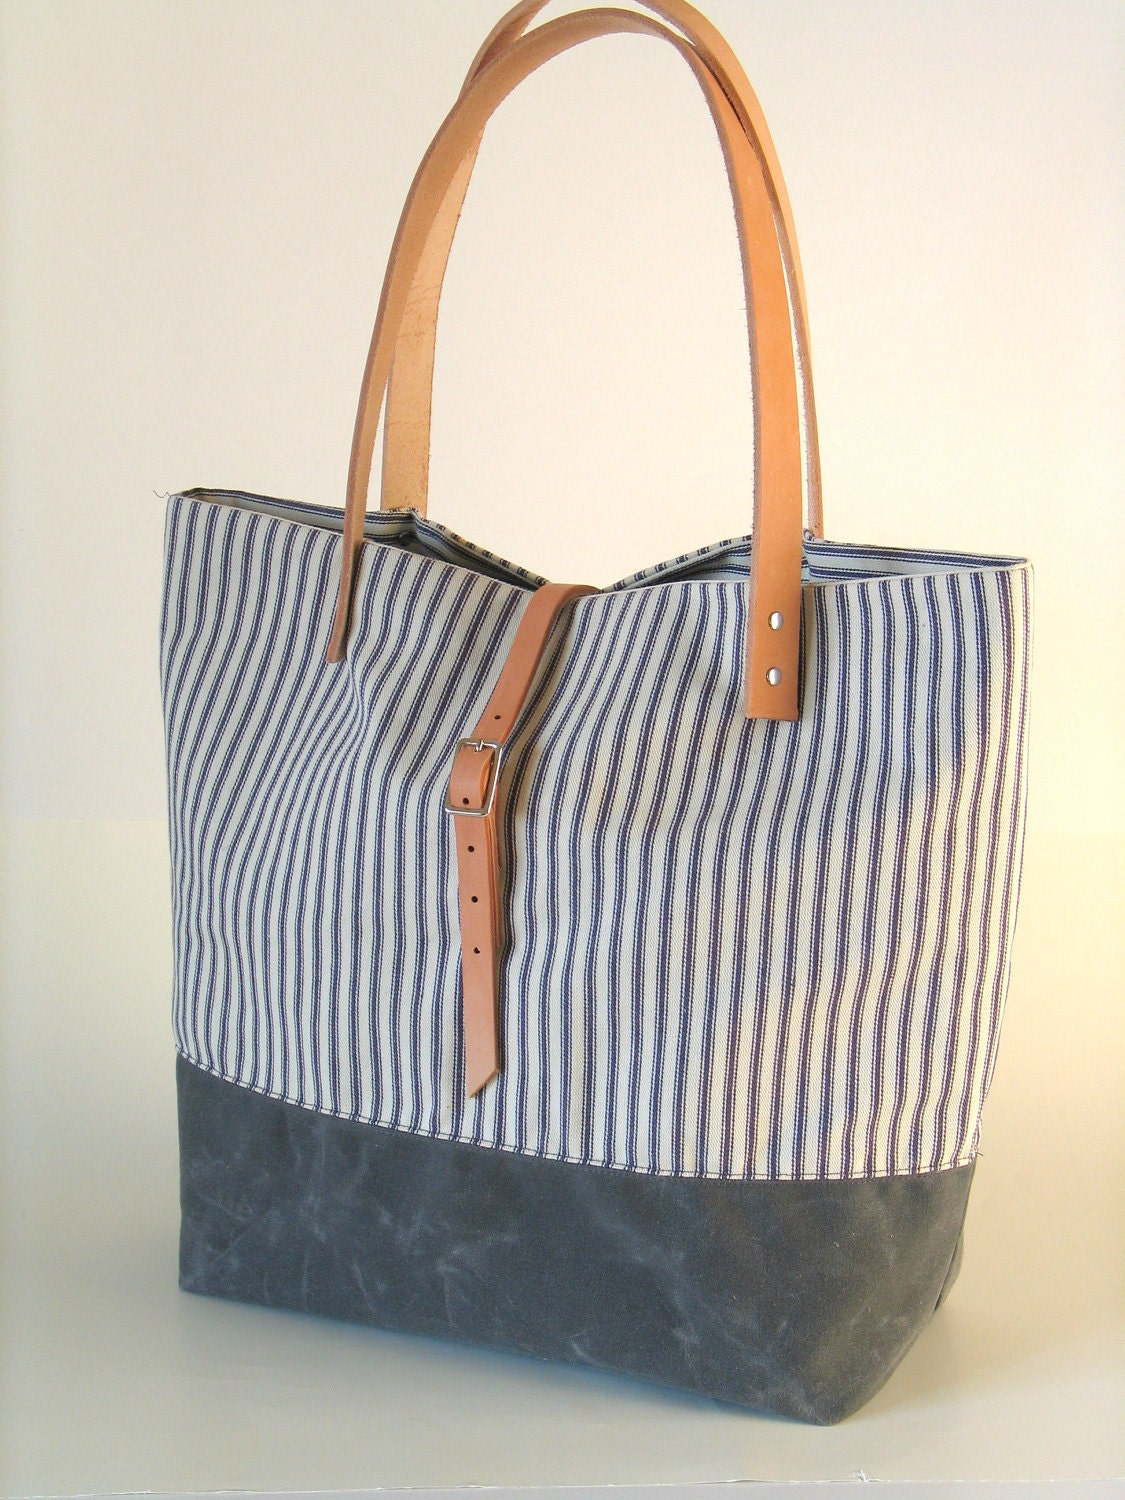 Waxed Canvas And Ticking Stripe Tote With Leather Handles